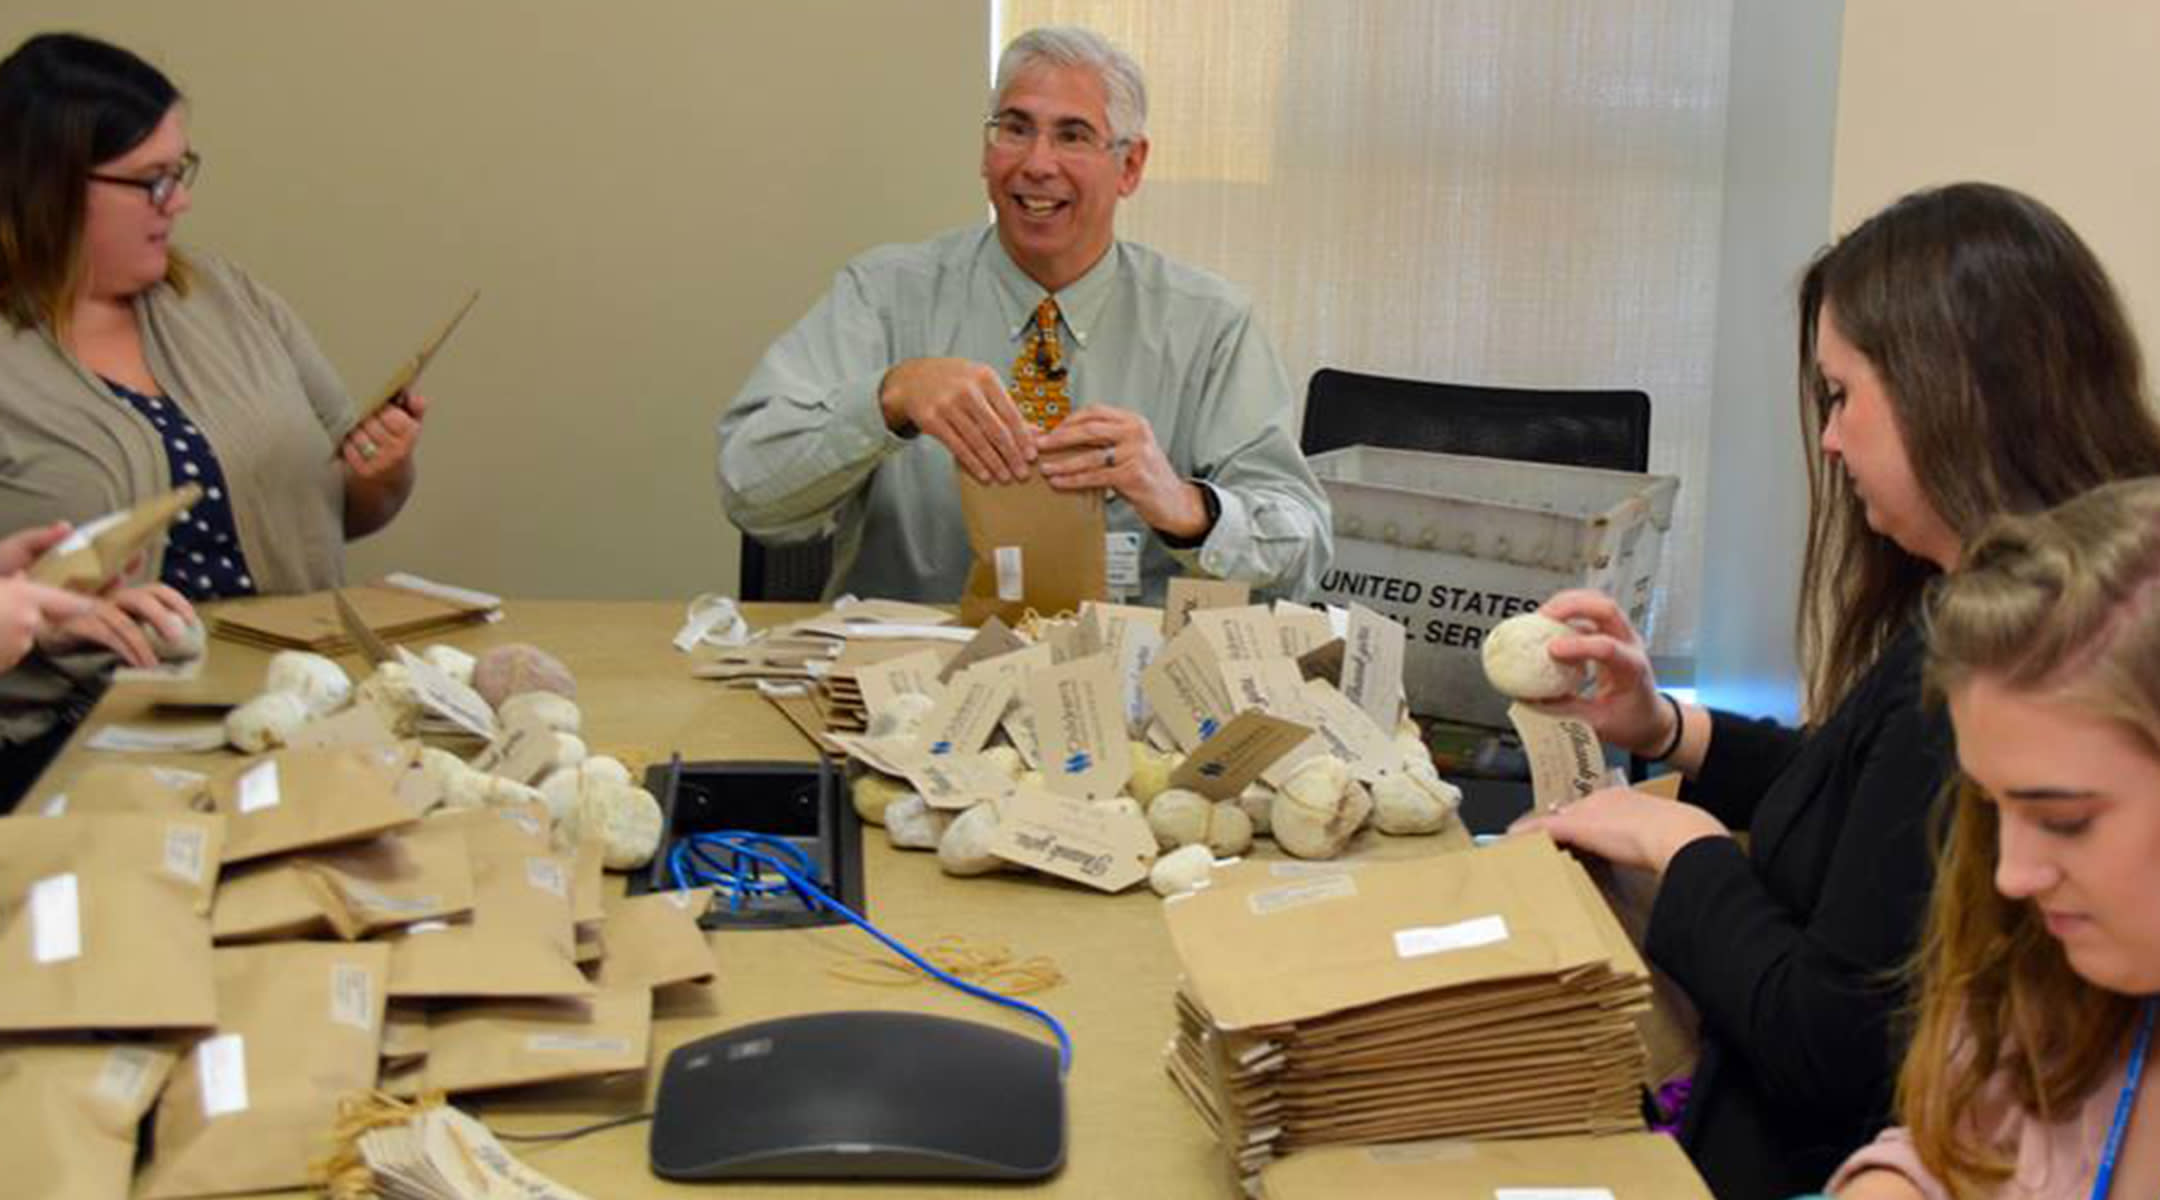 Dr. Margolis packaging rocks for Children's Hospital of Wisconsin